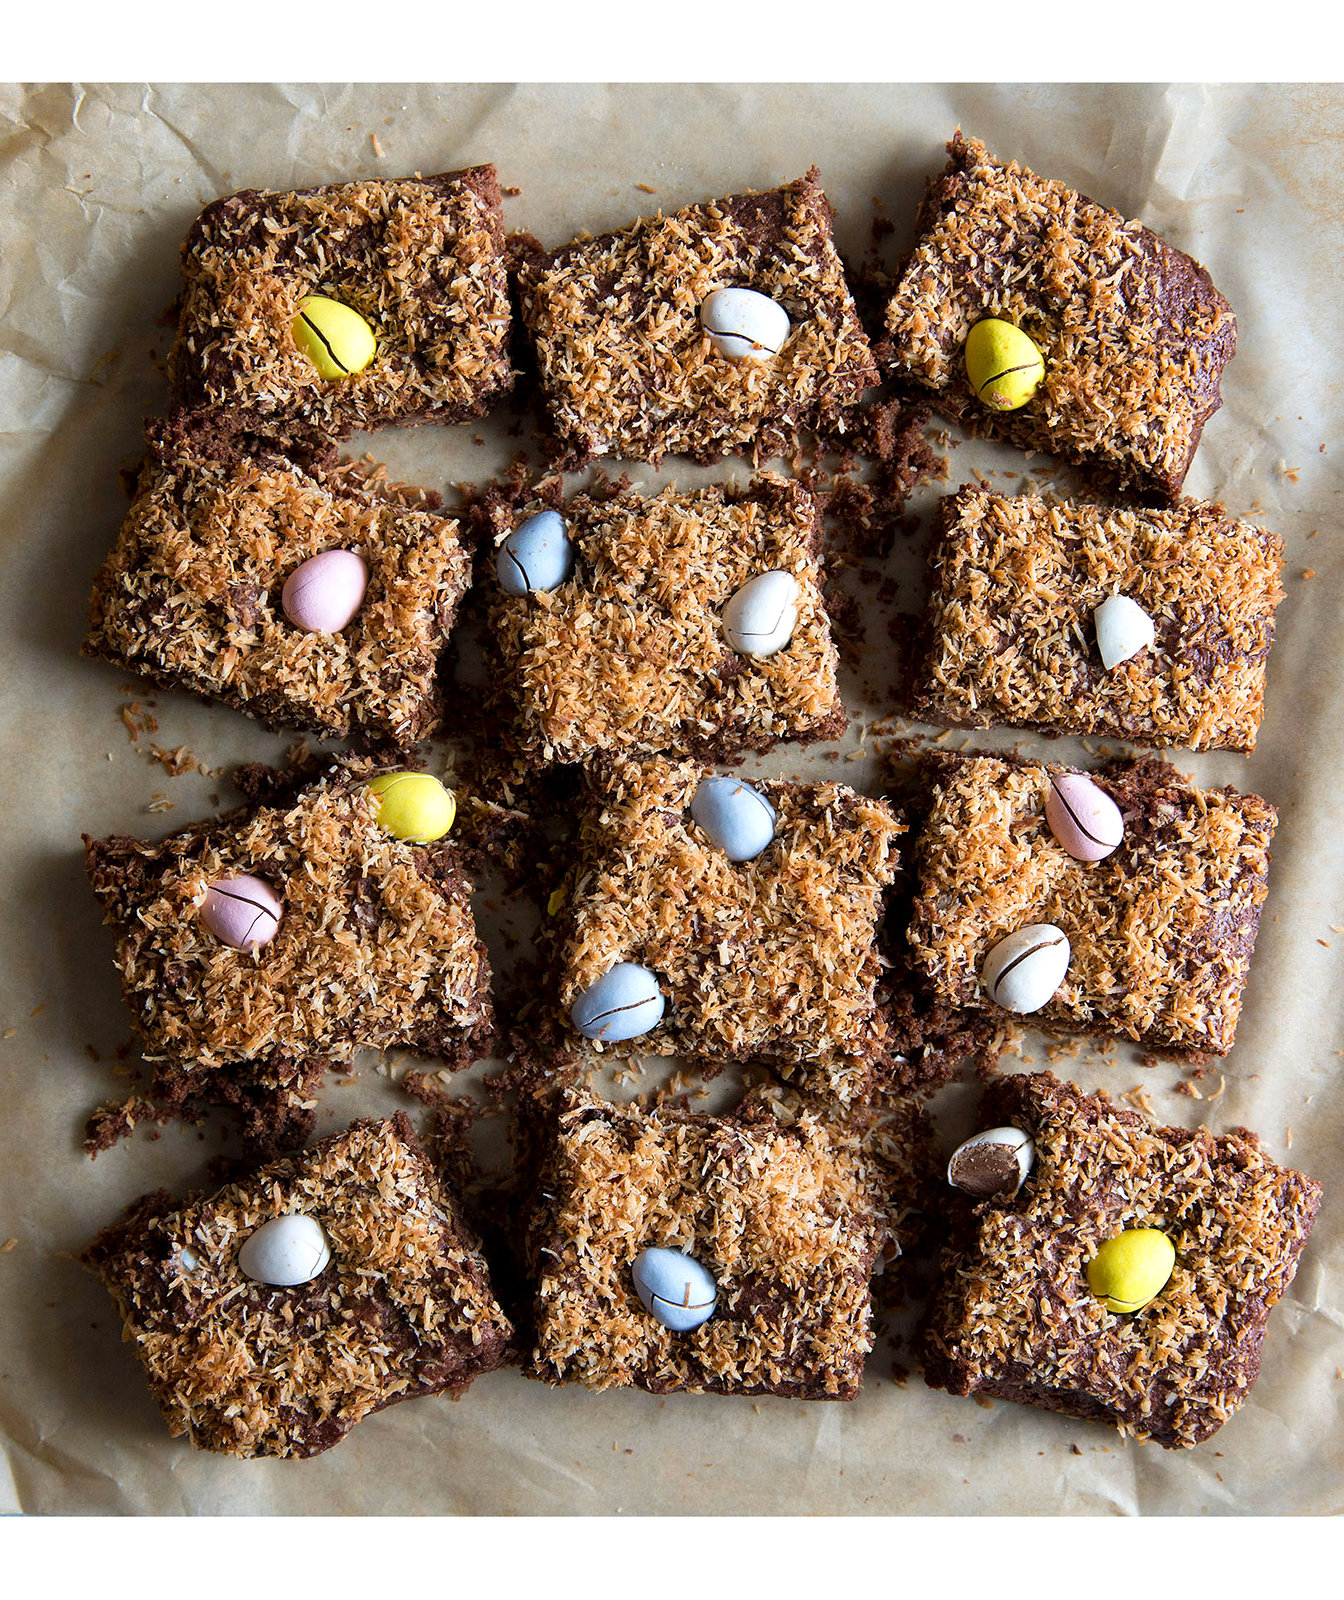 coconut-cadbury-egg-brownies